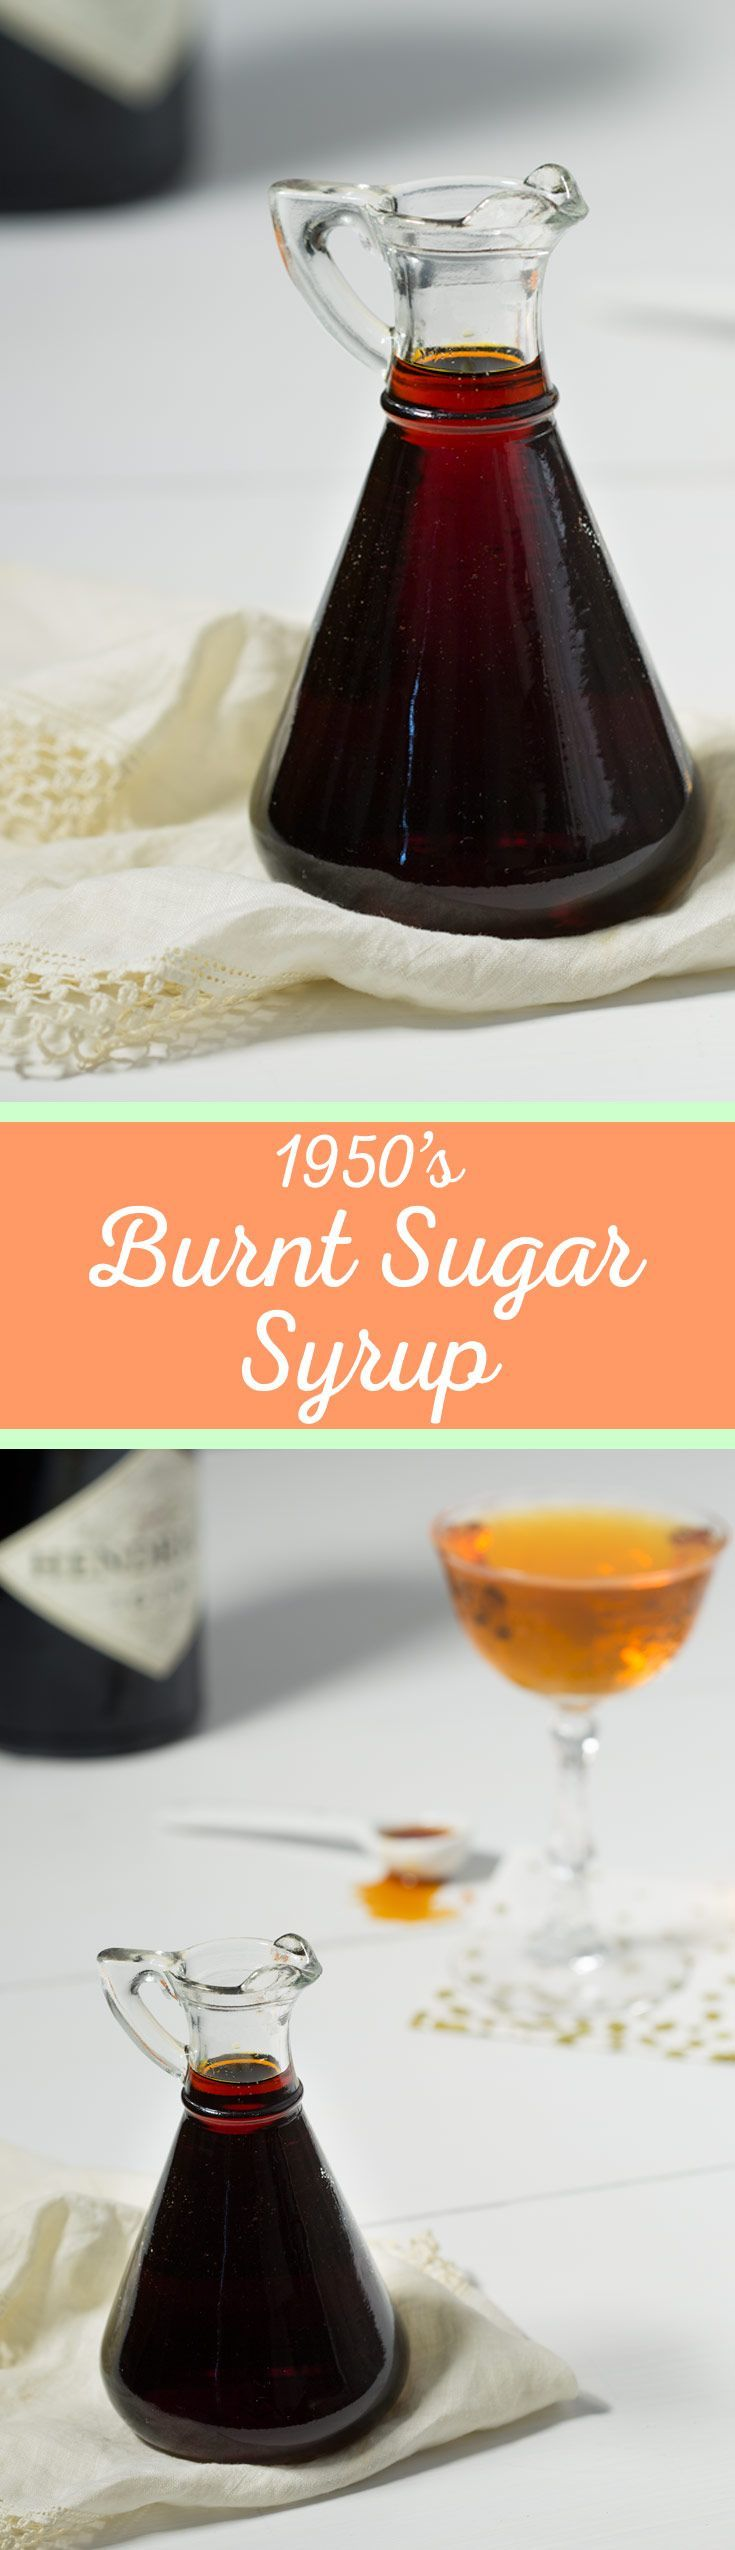 how to use simple syrup on cakes